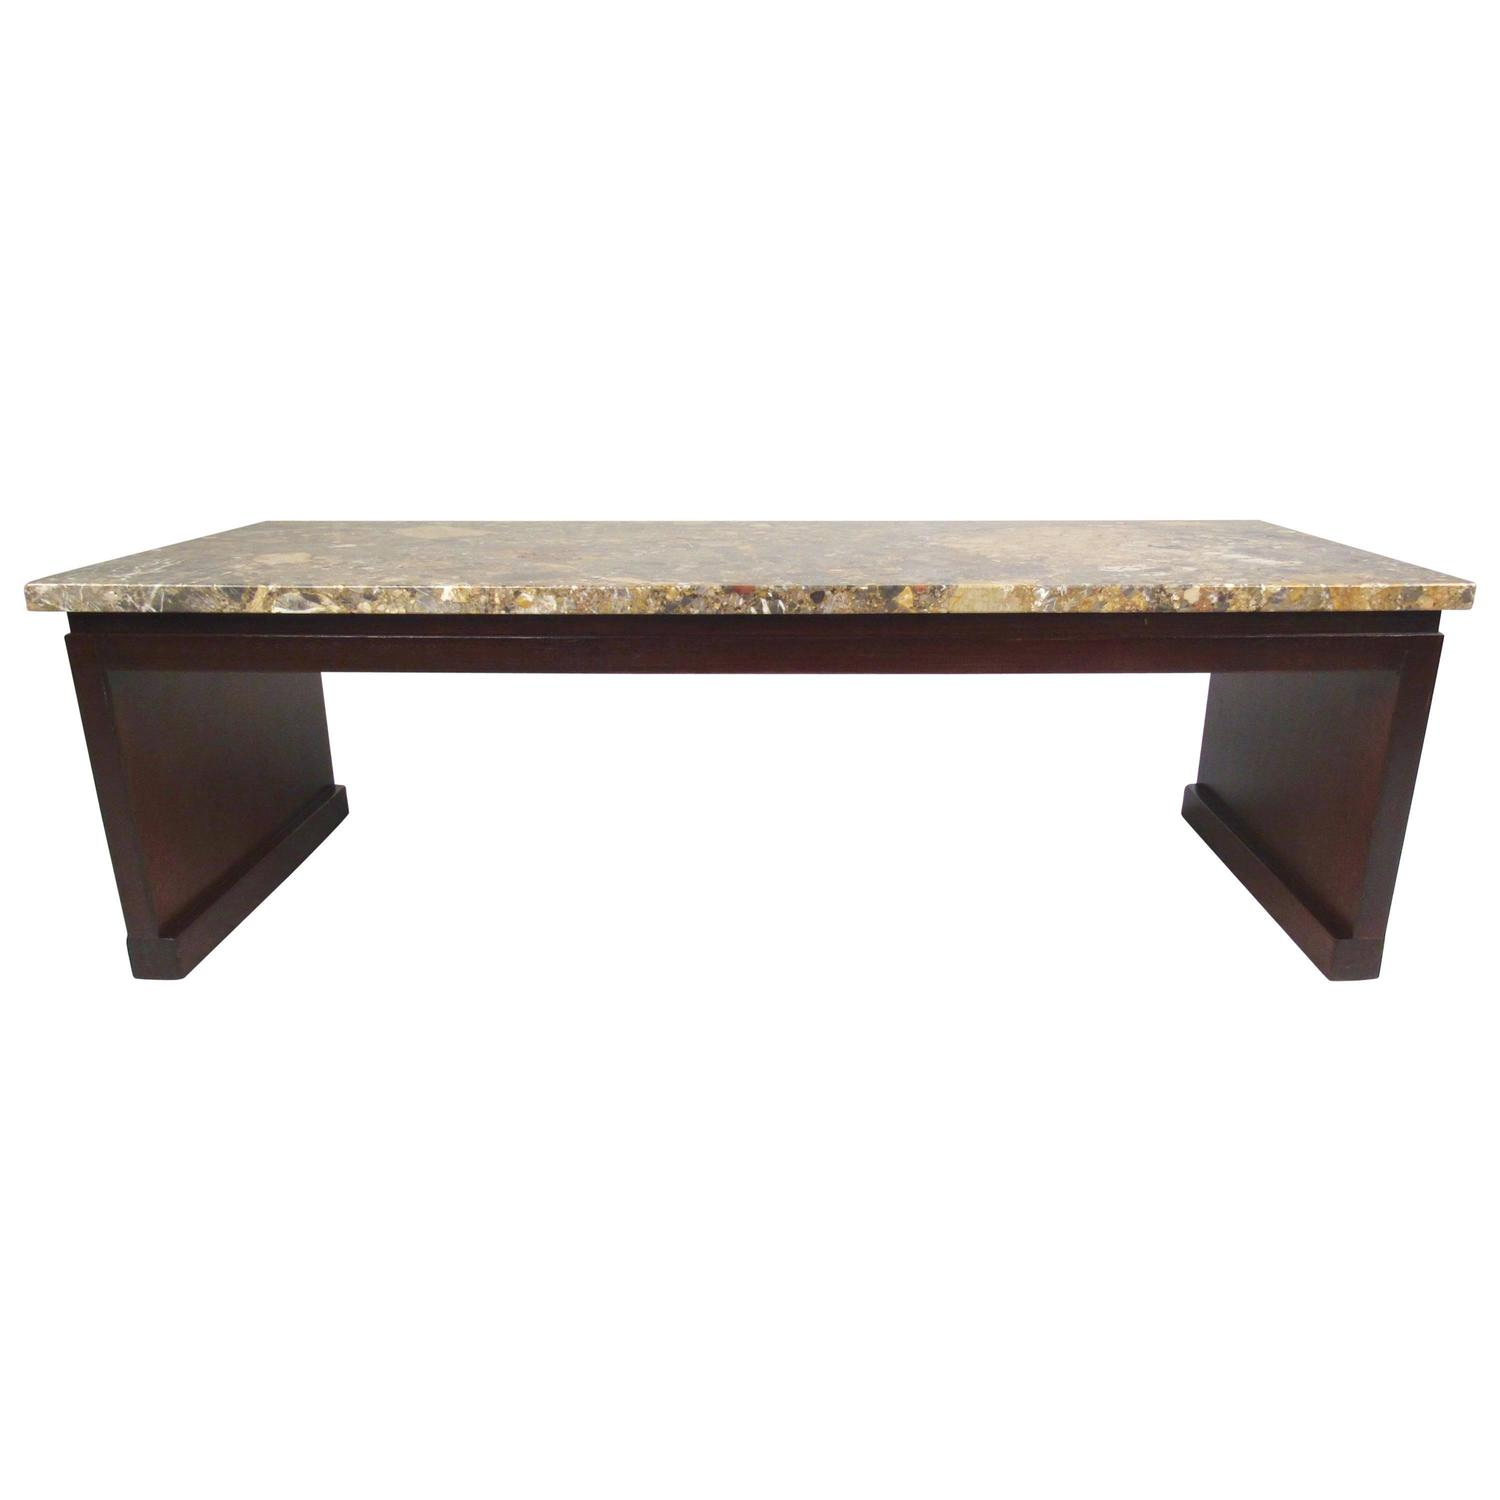 Mid Century Modern Marble Top Coffee Table Or Bench By Widdicomb For Sale At 1stdibs